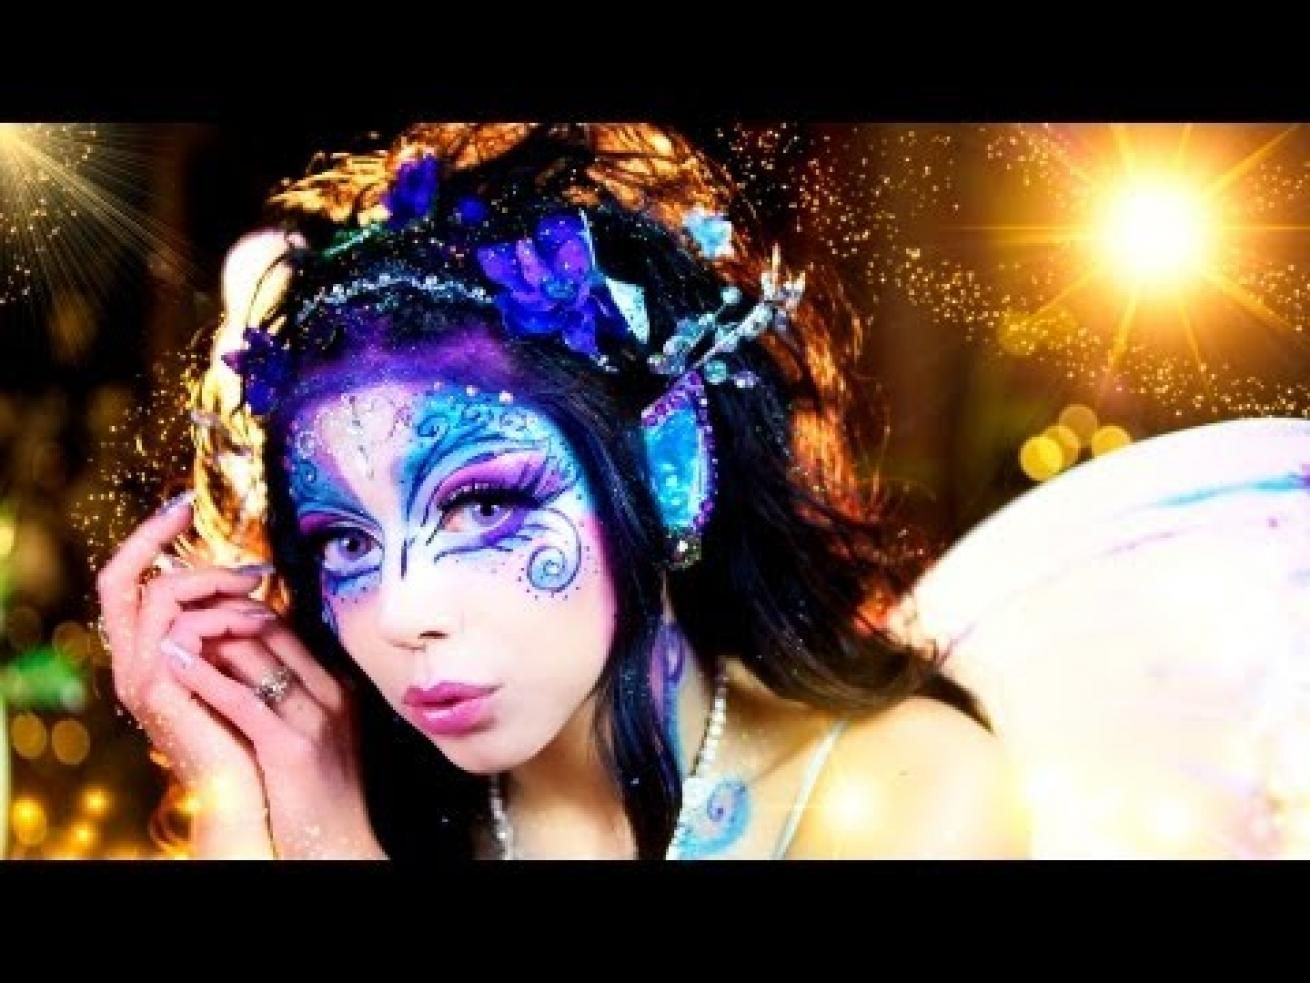 Dramatic face makeup fairy makeup designs face ajilbab watch fairy makeup a make up tutorials video on stuffpoint join me on a magical journey in becoming a beautiful enchanting fairy baditri Image collections